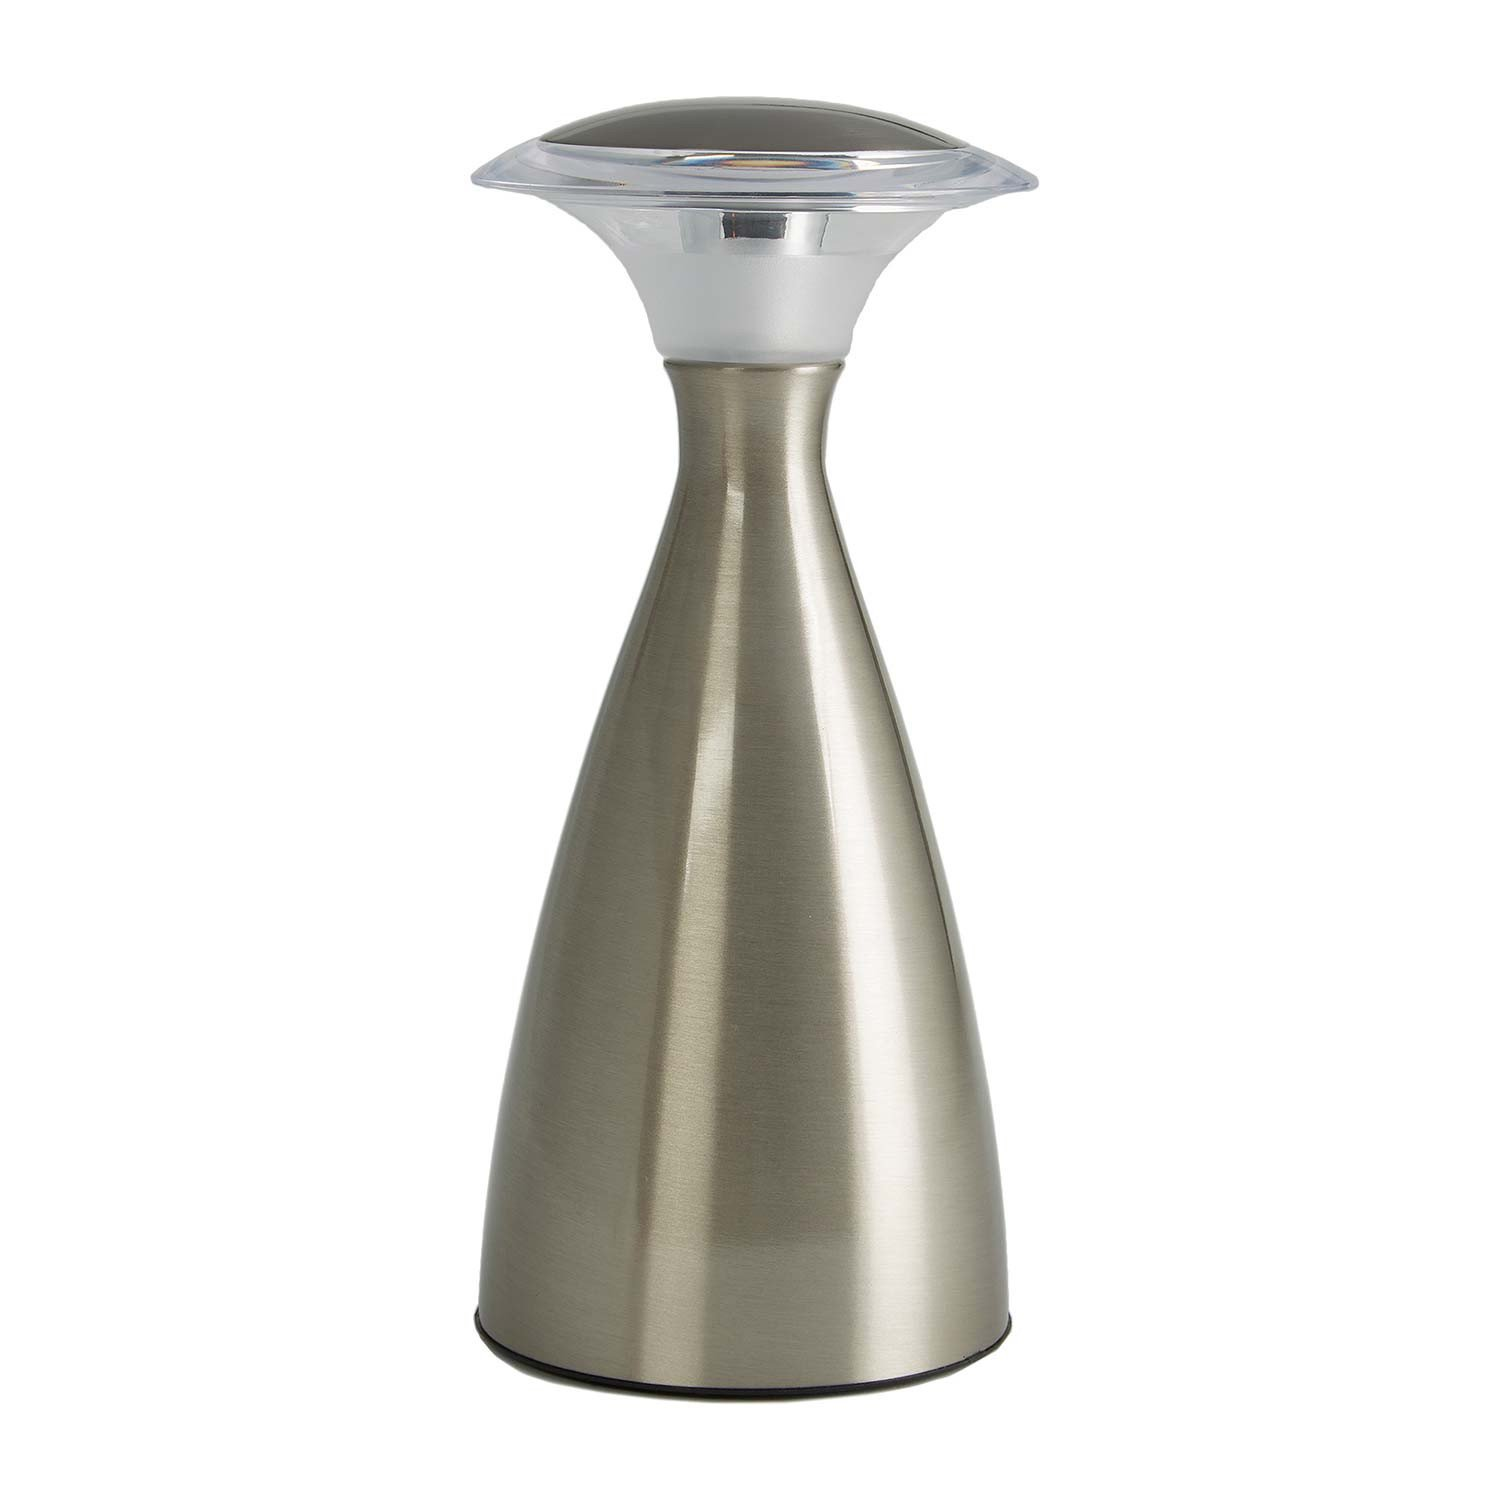 Light It! By Fulcrum, Lanterna LUX, Wireless 23-LED Touch Lamp, Battery Operated, Silver